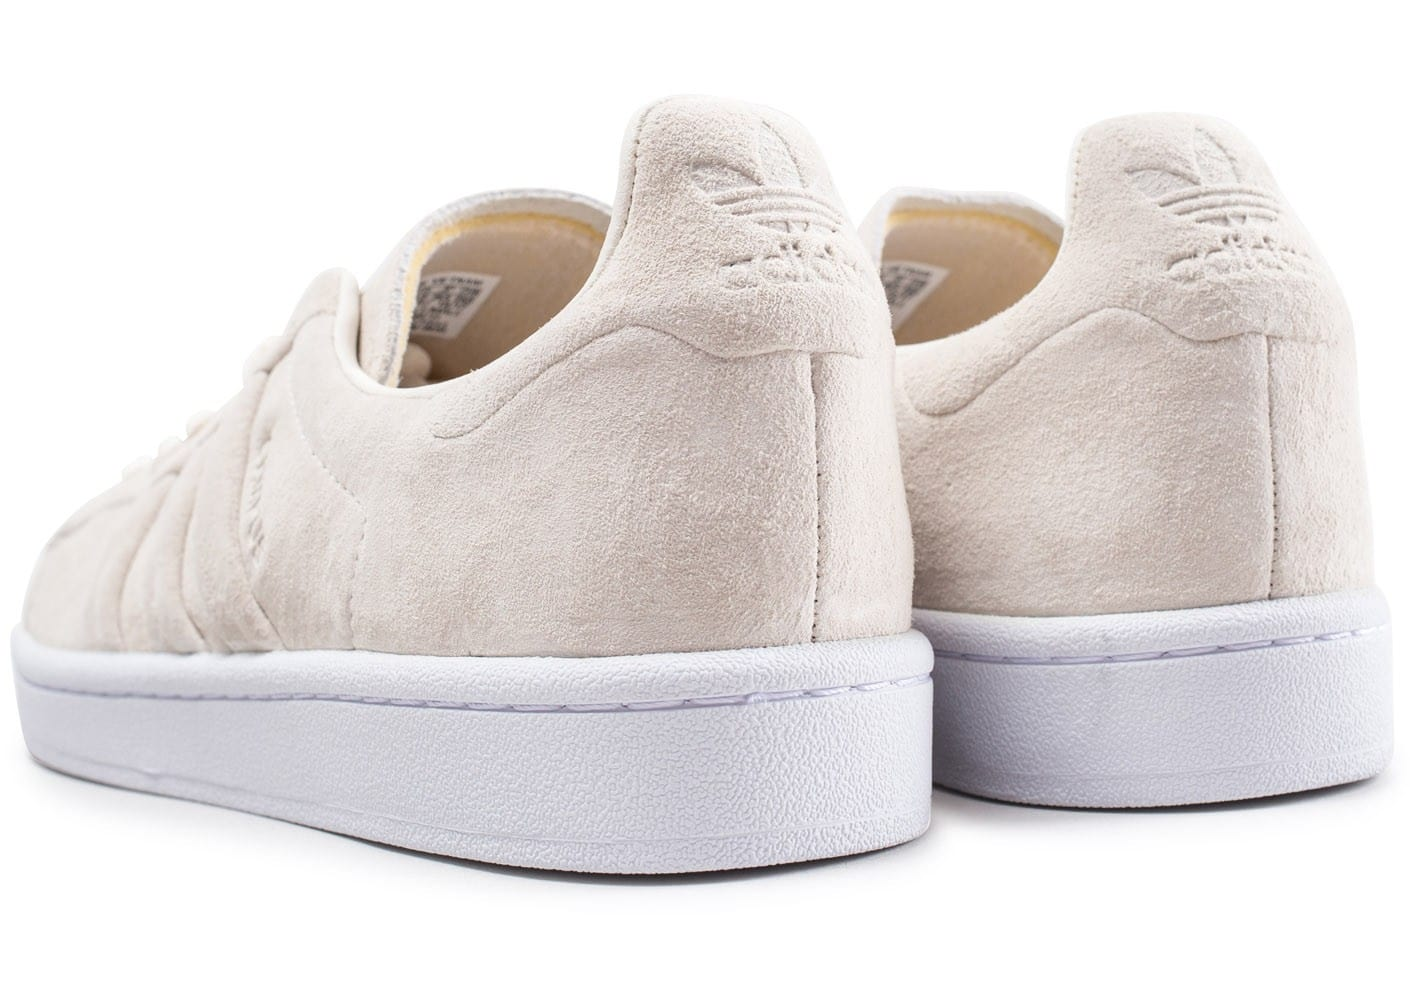 online store 39687 4d71f ... Chaussures adidas Campus Stitch and Turn beige vue dessous ...